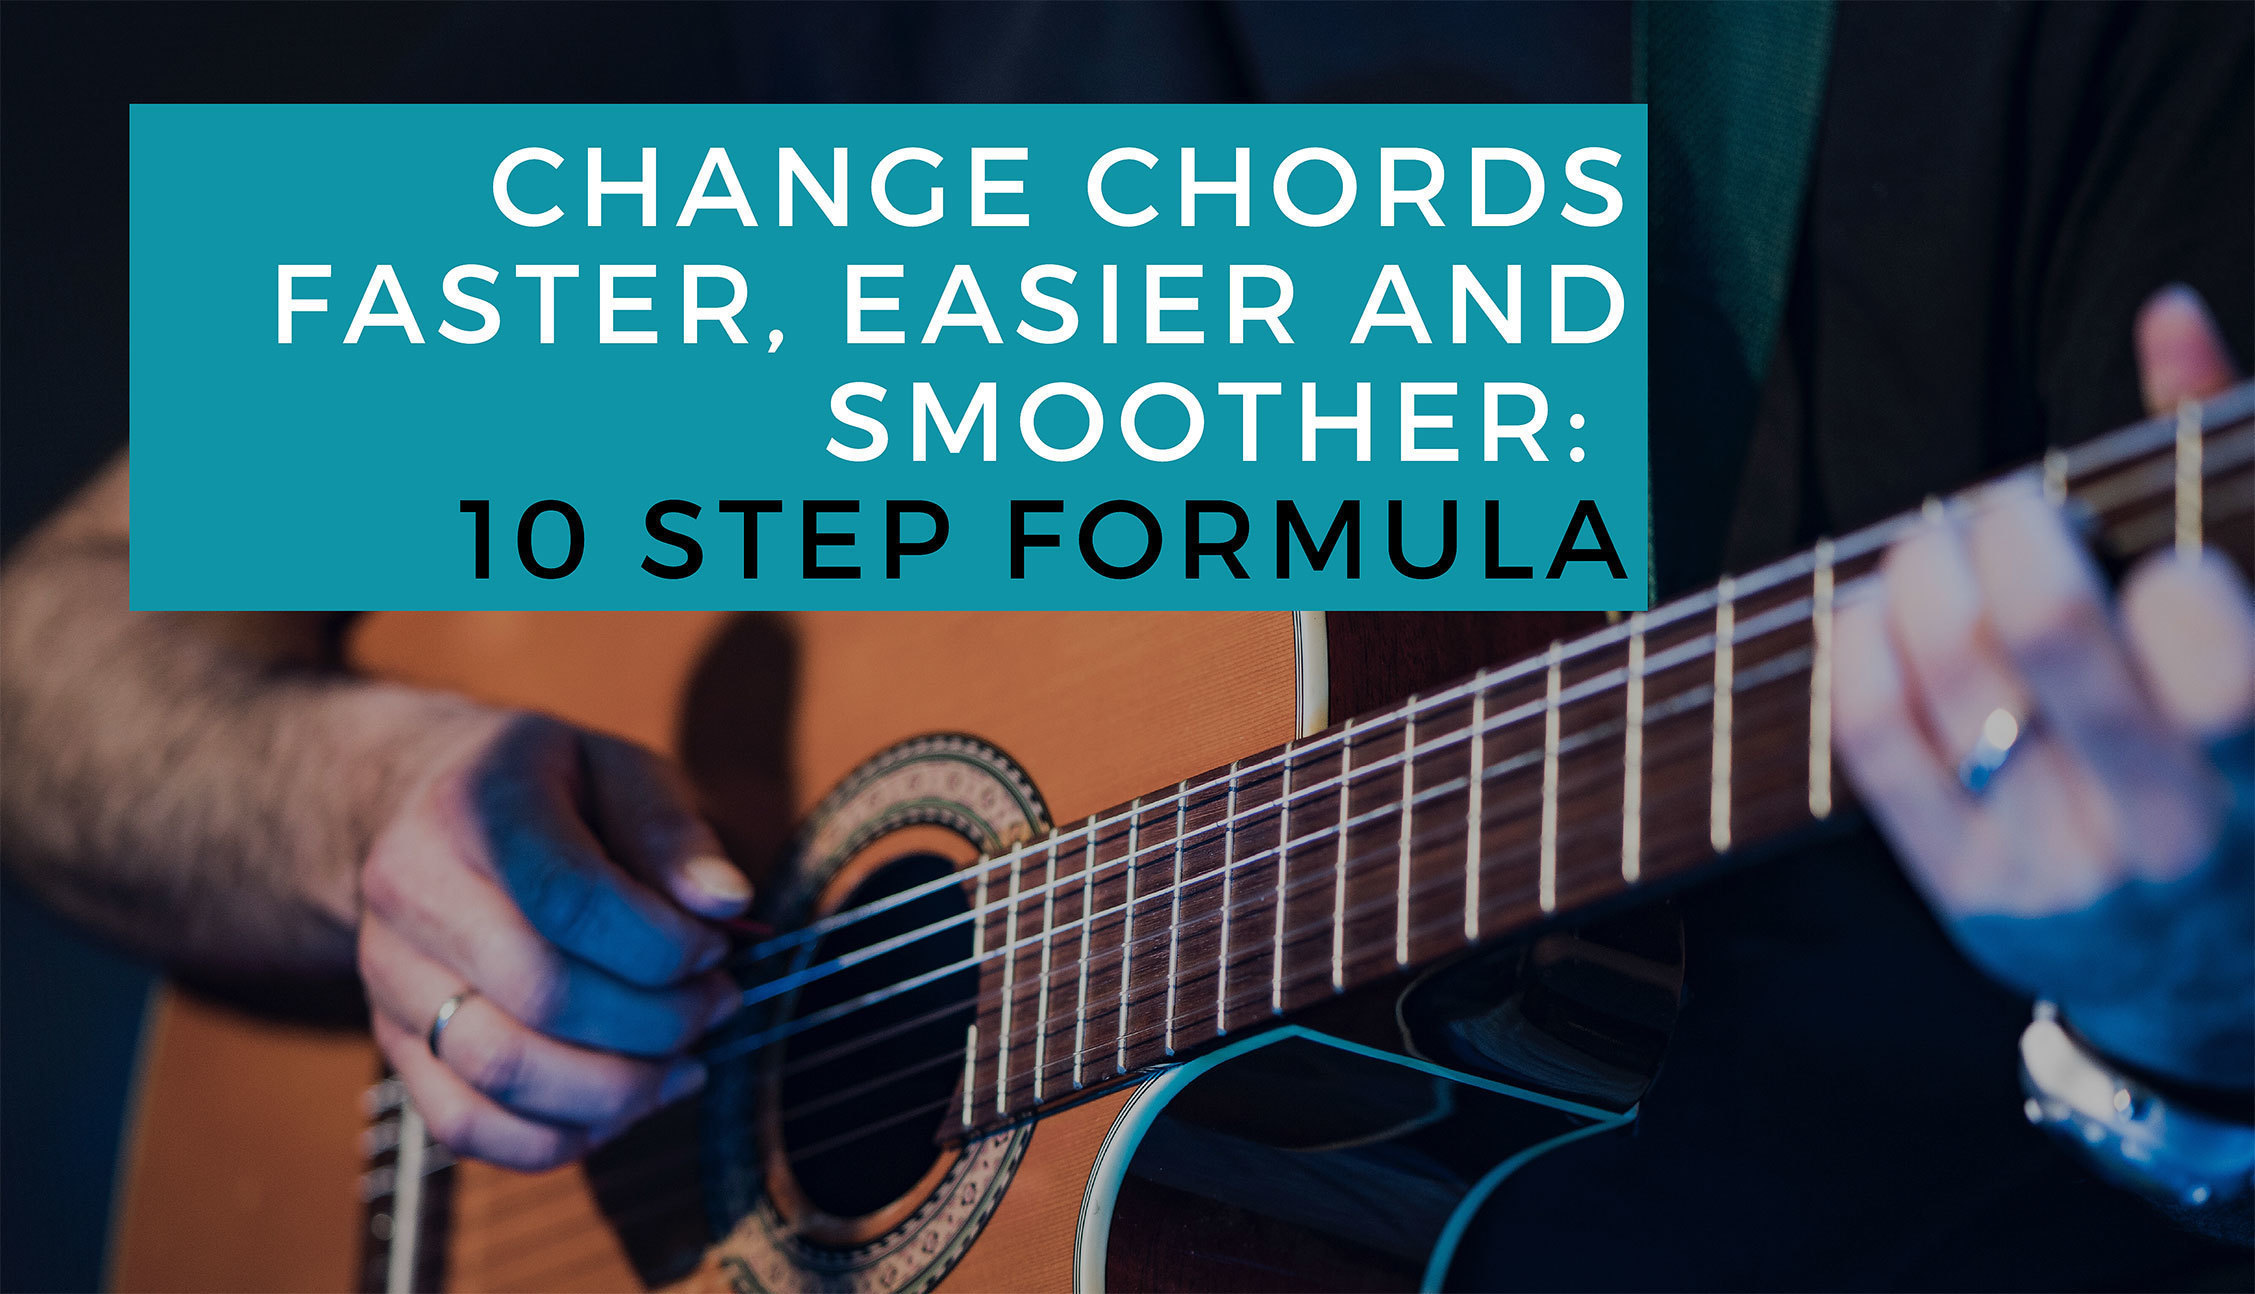 10 Step How To Change Chords Faster Easier And Smoother Formula That Works Every Time